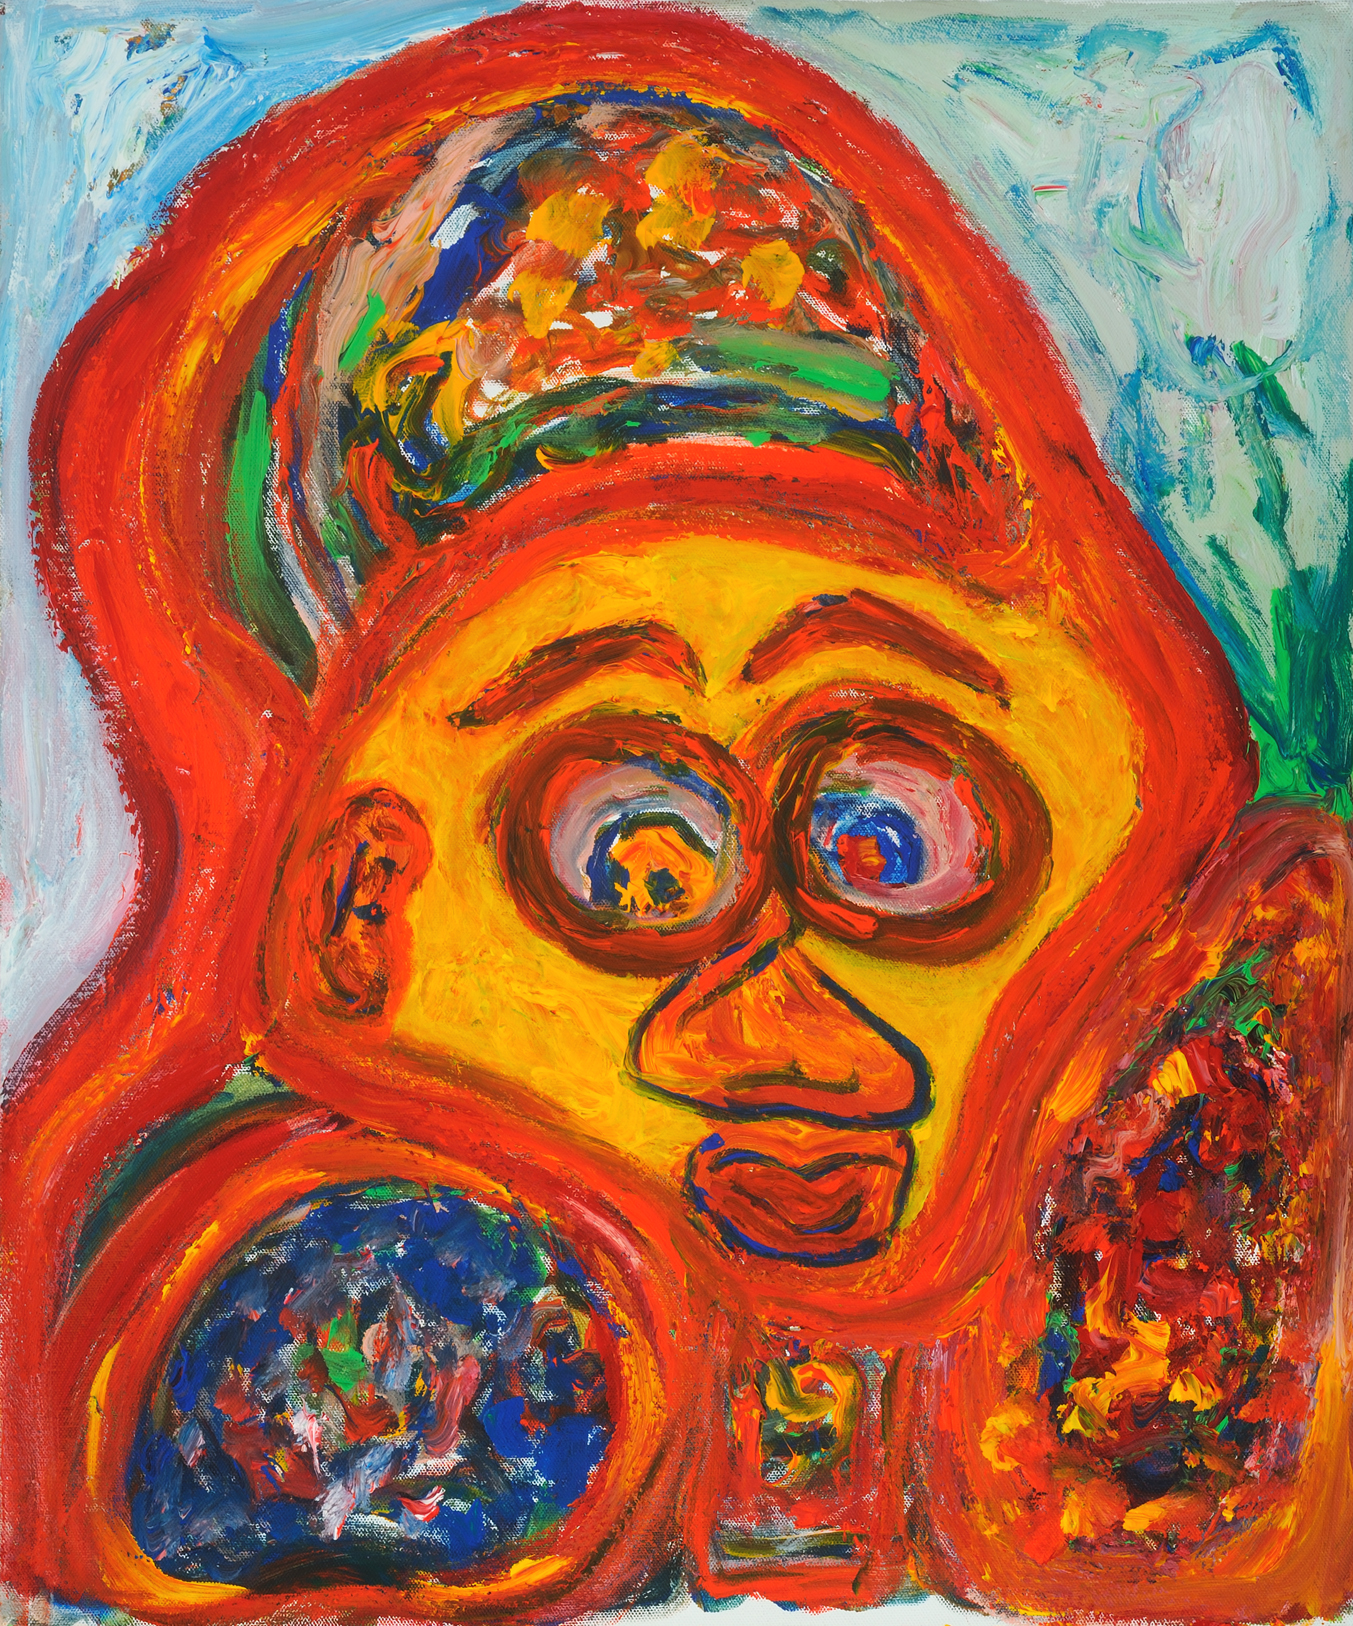 Part of the Gorilla Team   Acrylic on Canvas